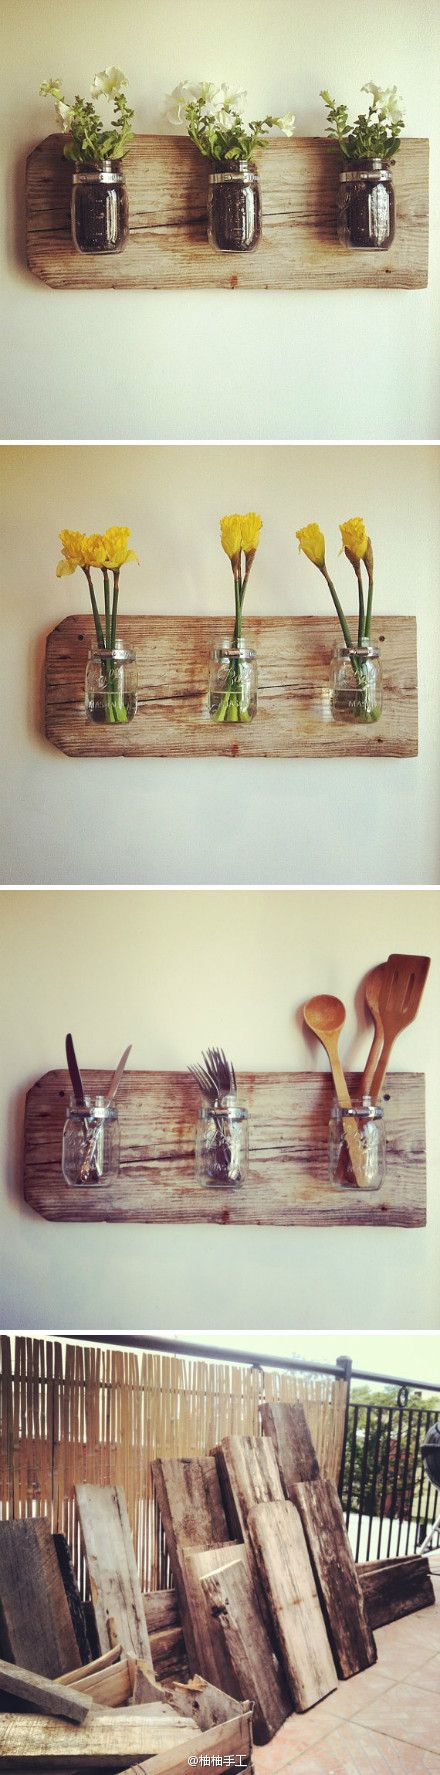 Salvage wood with mason jar vases/containers: Decor, Kitchens, Idea, Herbs Gardens, House, Salvaged Woods, Diy, Mason Jars Vase, Flower